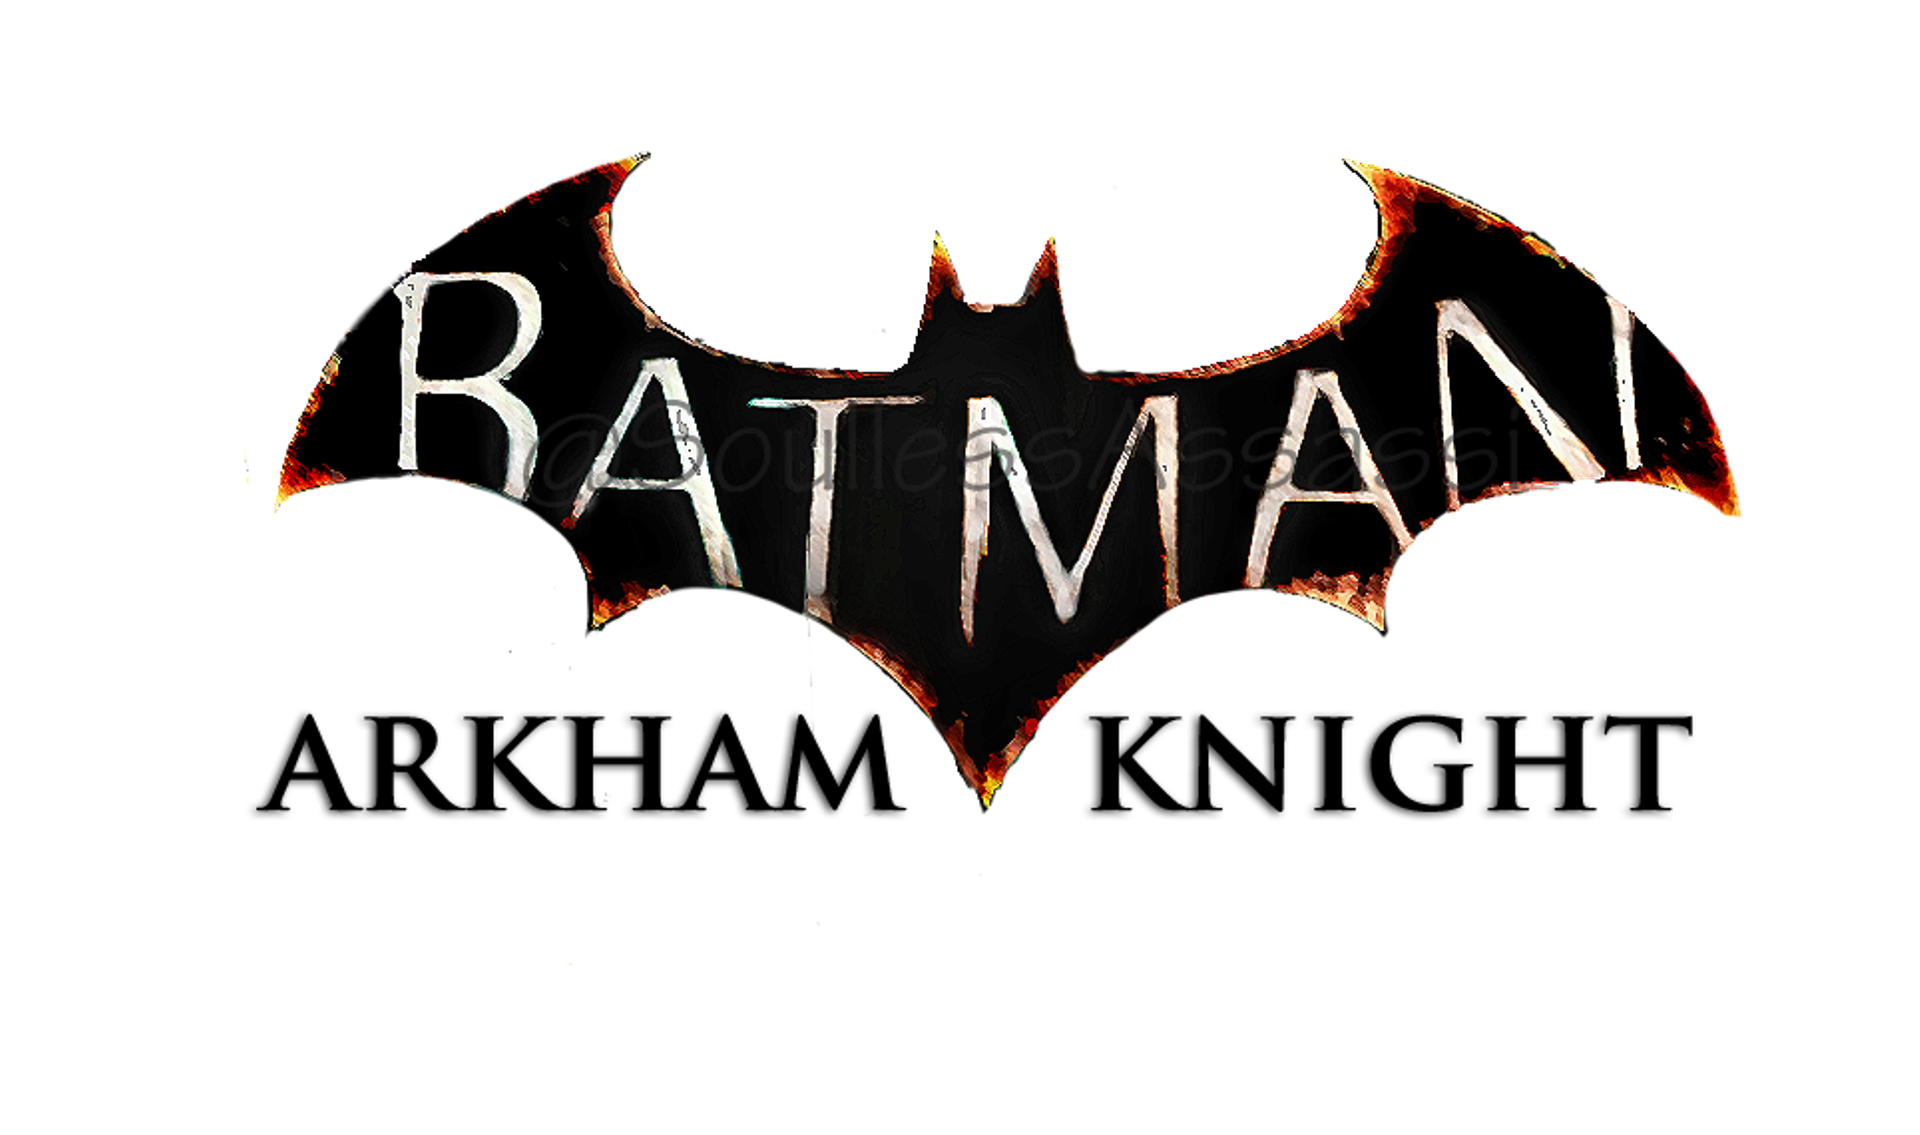 Batman Arkham Knight Logo Background